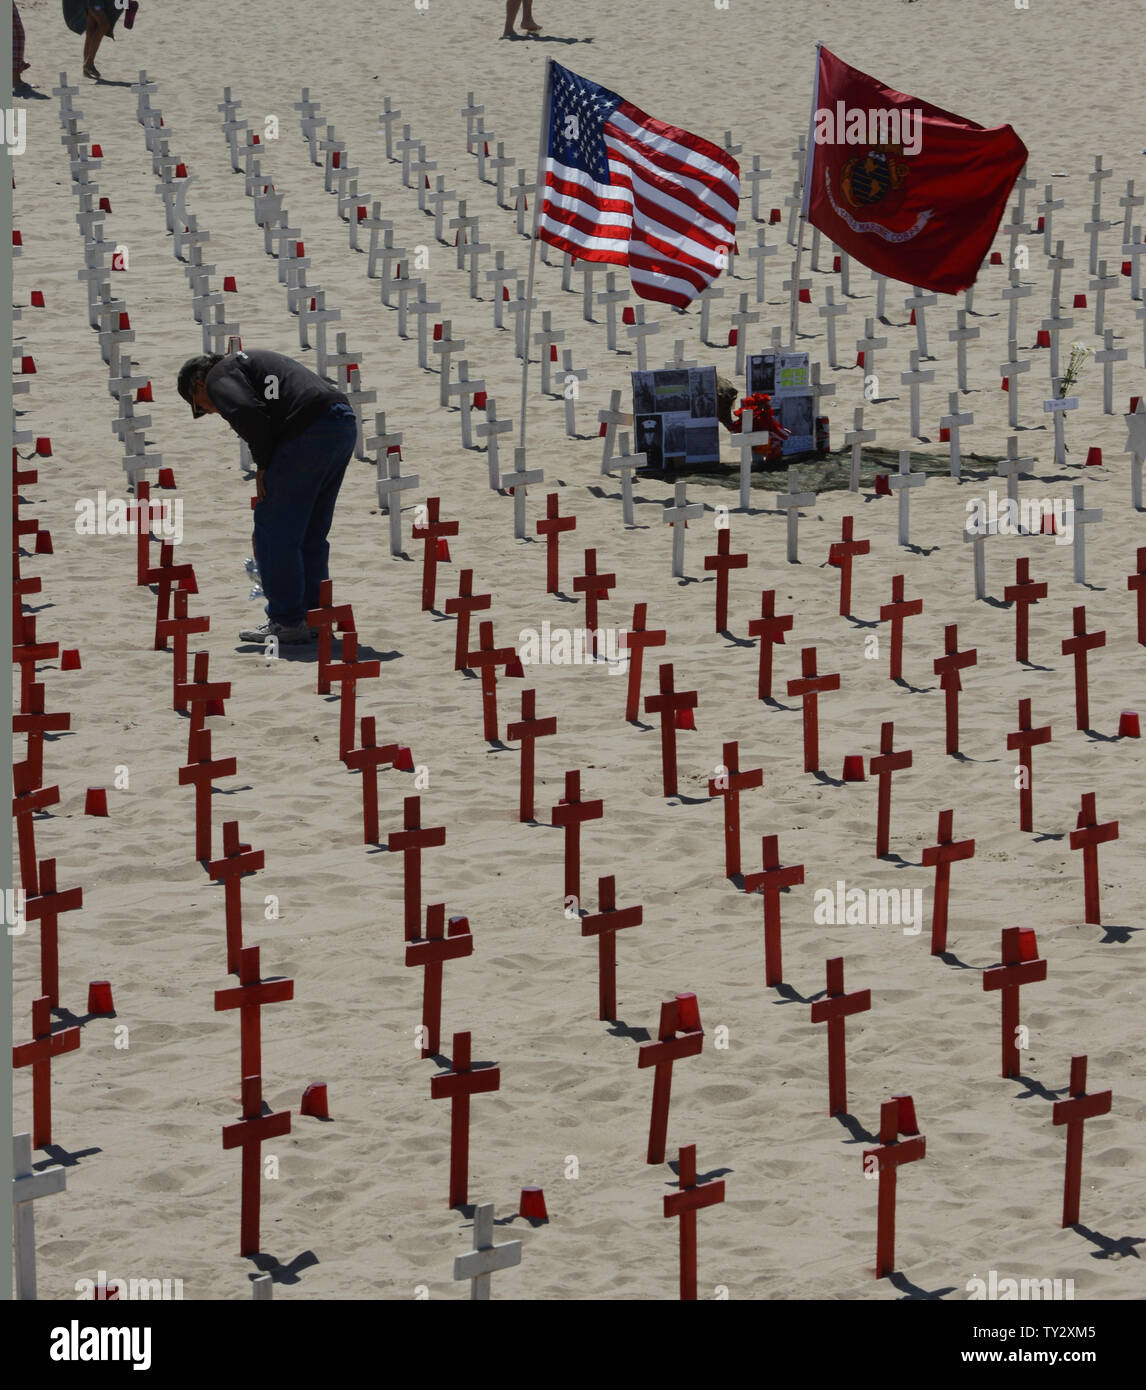 A man walks amid crosses on display at the Arlington West Memorial Project in Santa Monica, California on May 27, 2012. The beach memorial represents the 4,486 soldiers killed in Iraq and 1,984 killed in Afghanistan for a total of 6,470 dead in both wars.  UPI/Jim Ruymen - Stock Image